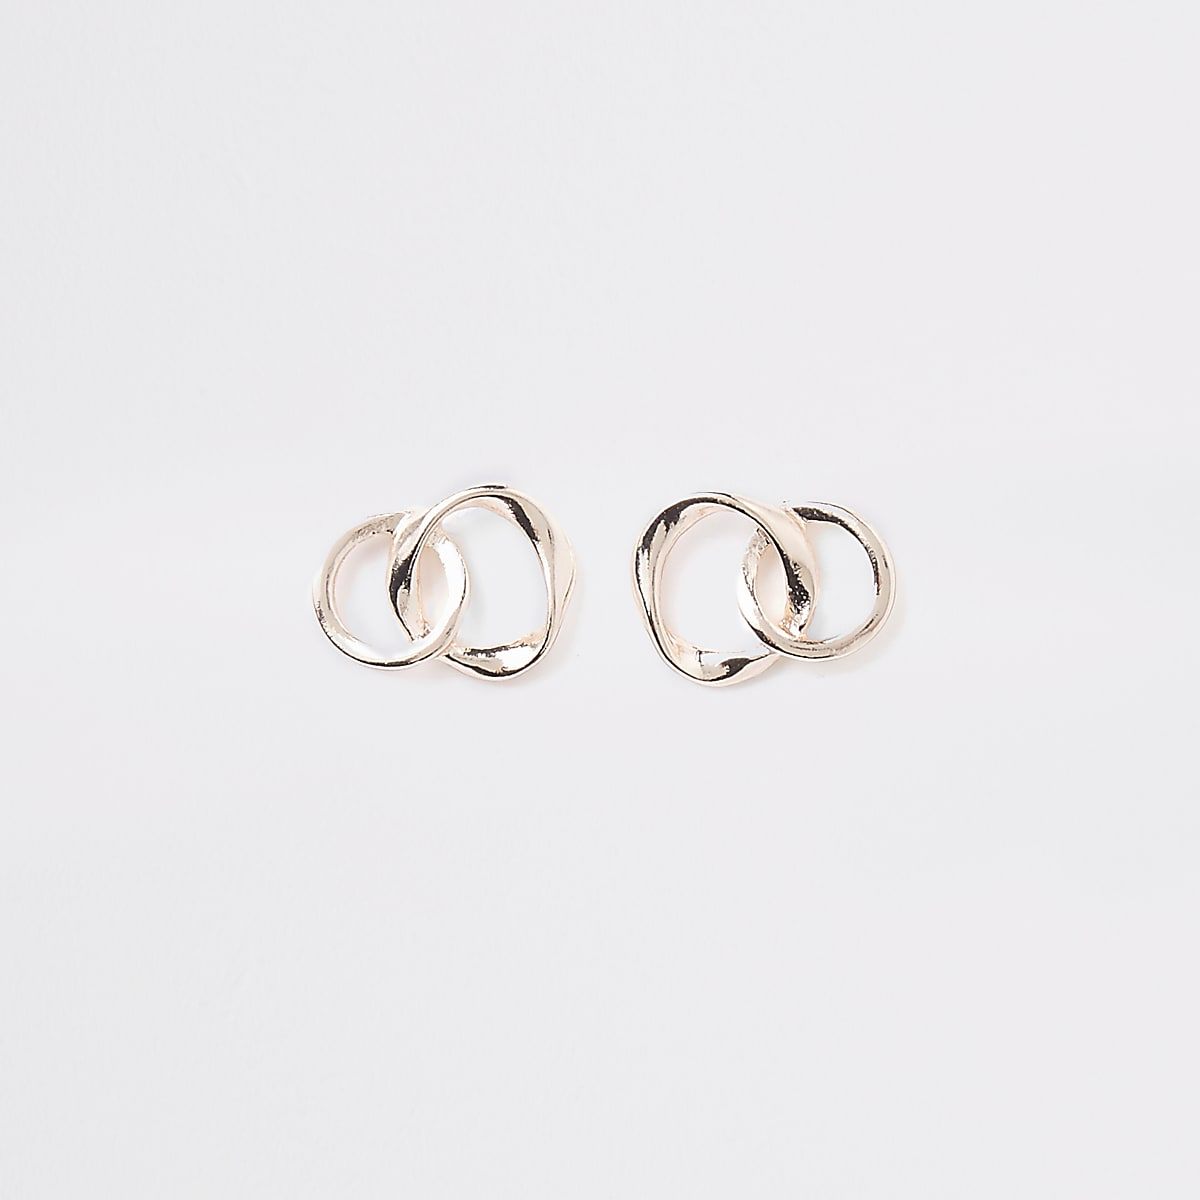 Rose gold wavy interlink stud earrings